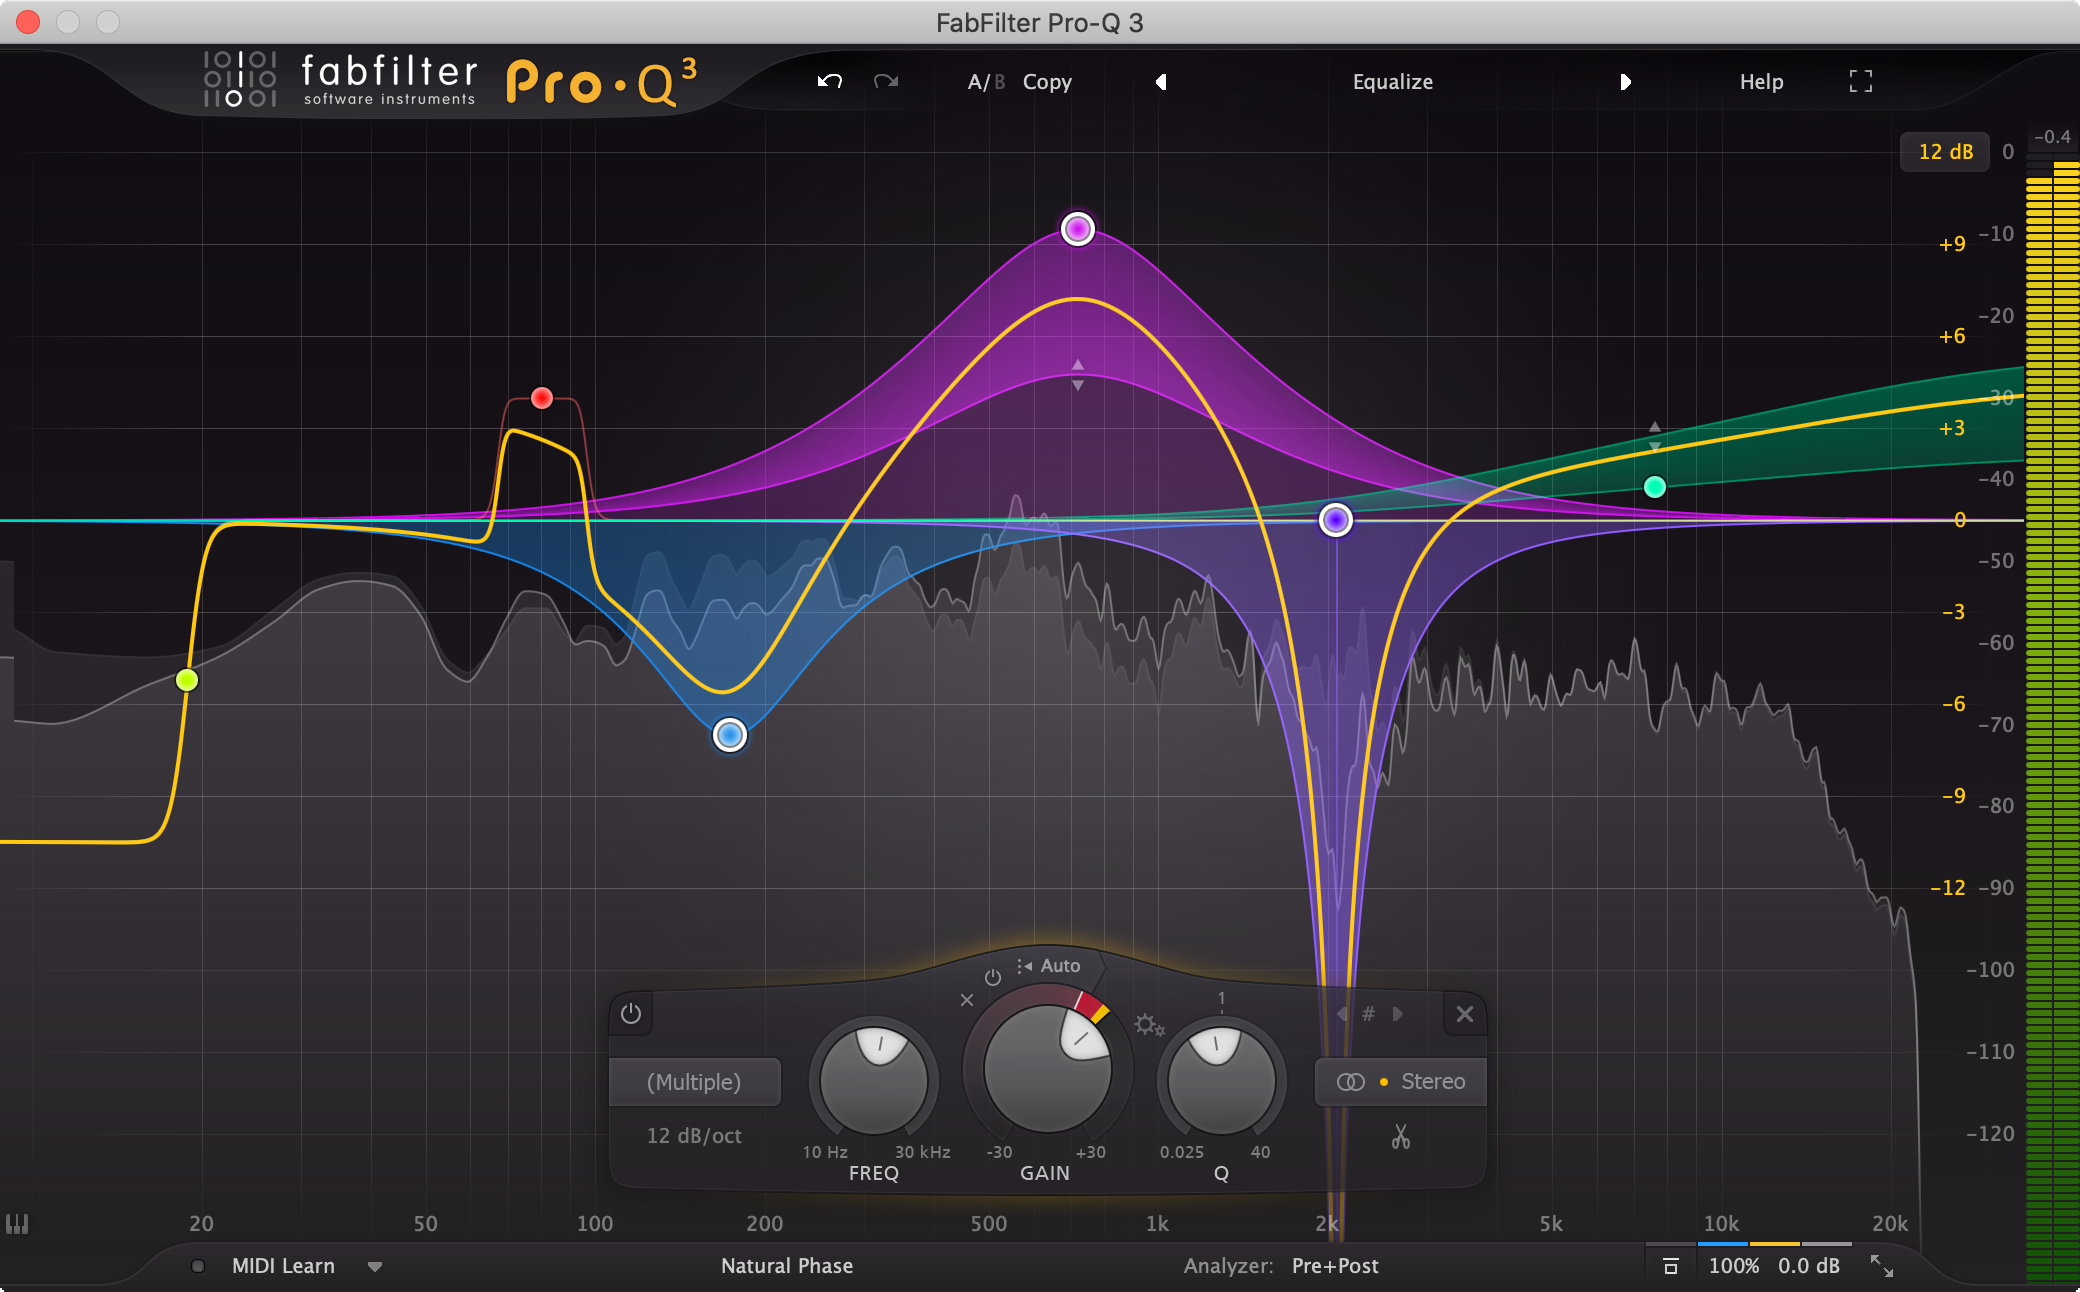 FabFilter Pro-Q 3 Screen Shot@2x.png